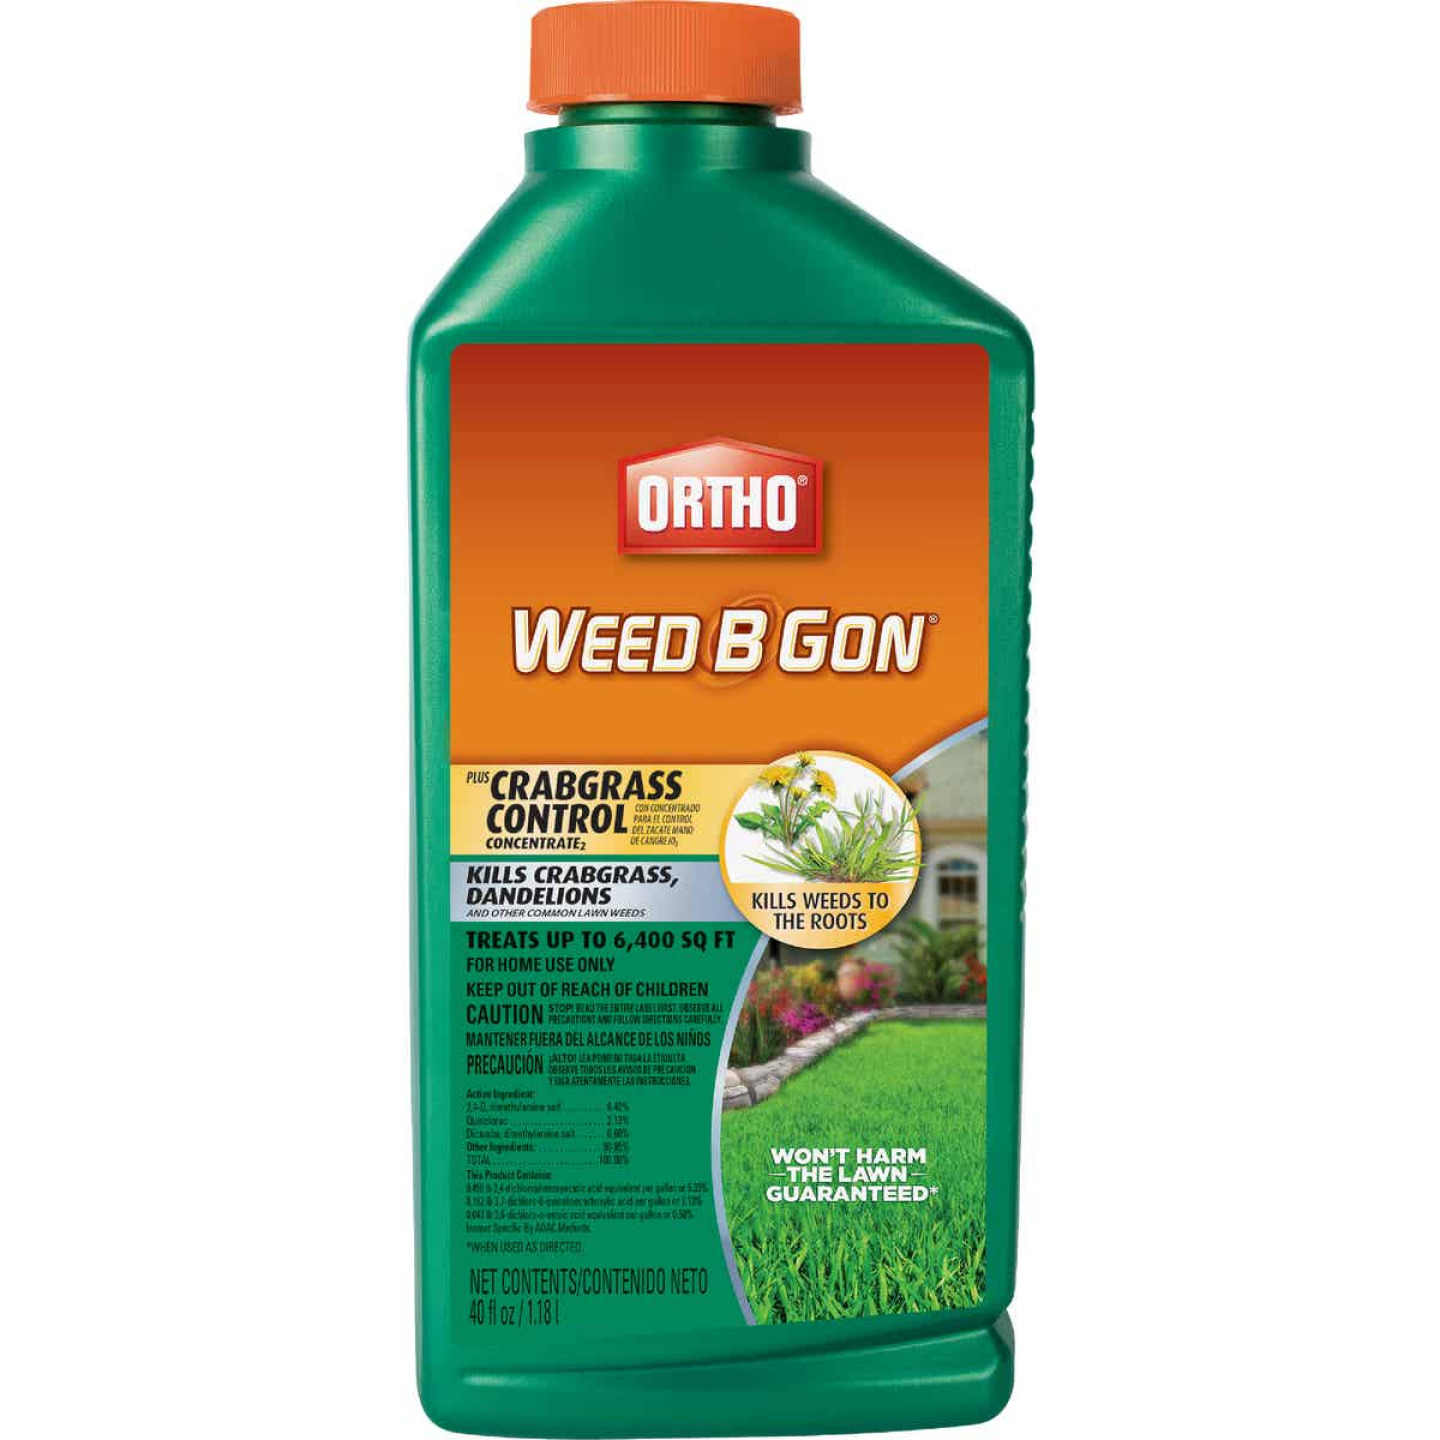 Ortho Weed B Gon 40 Oz. Concentrate Crabgrass & Weed Killer Image 1